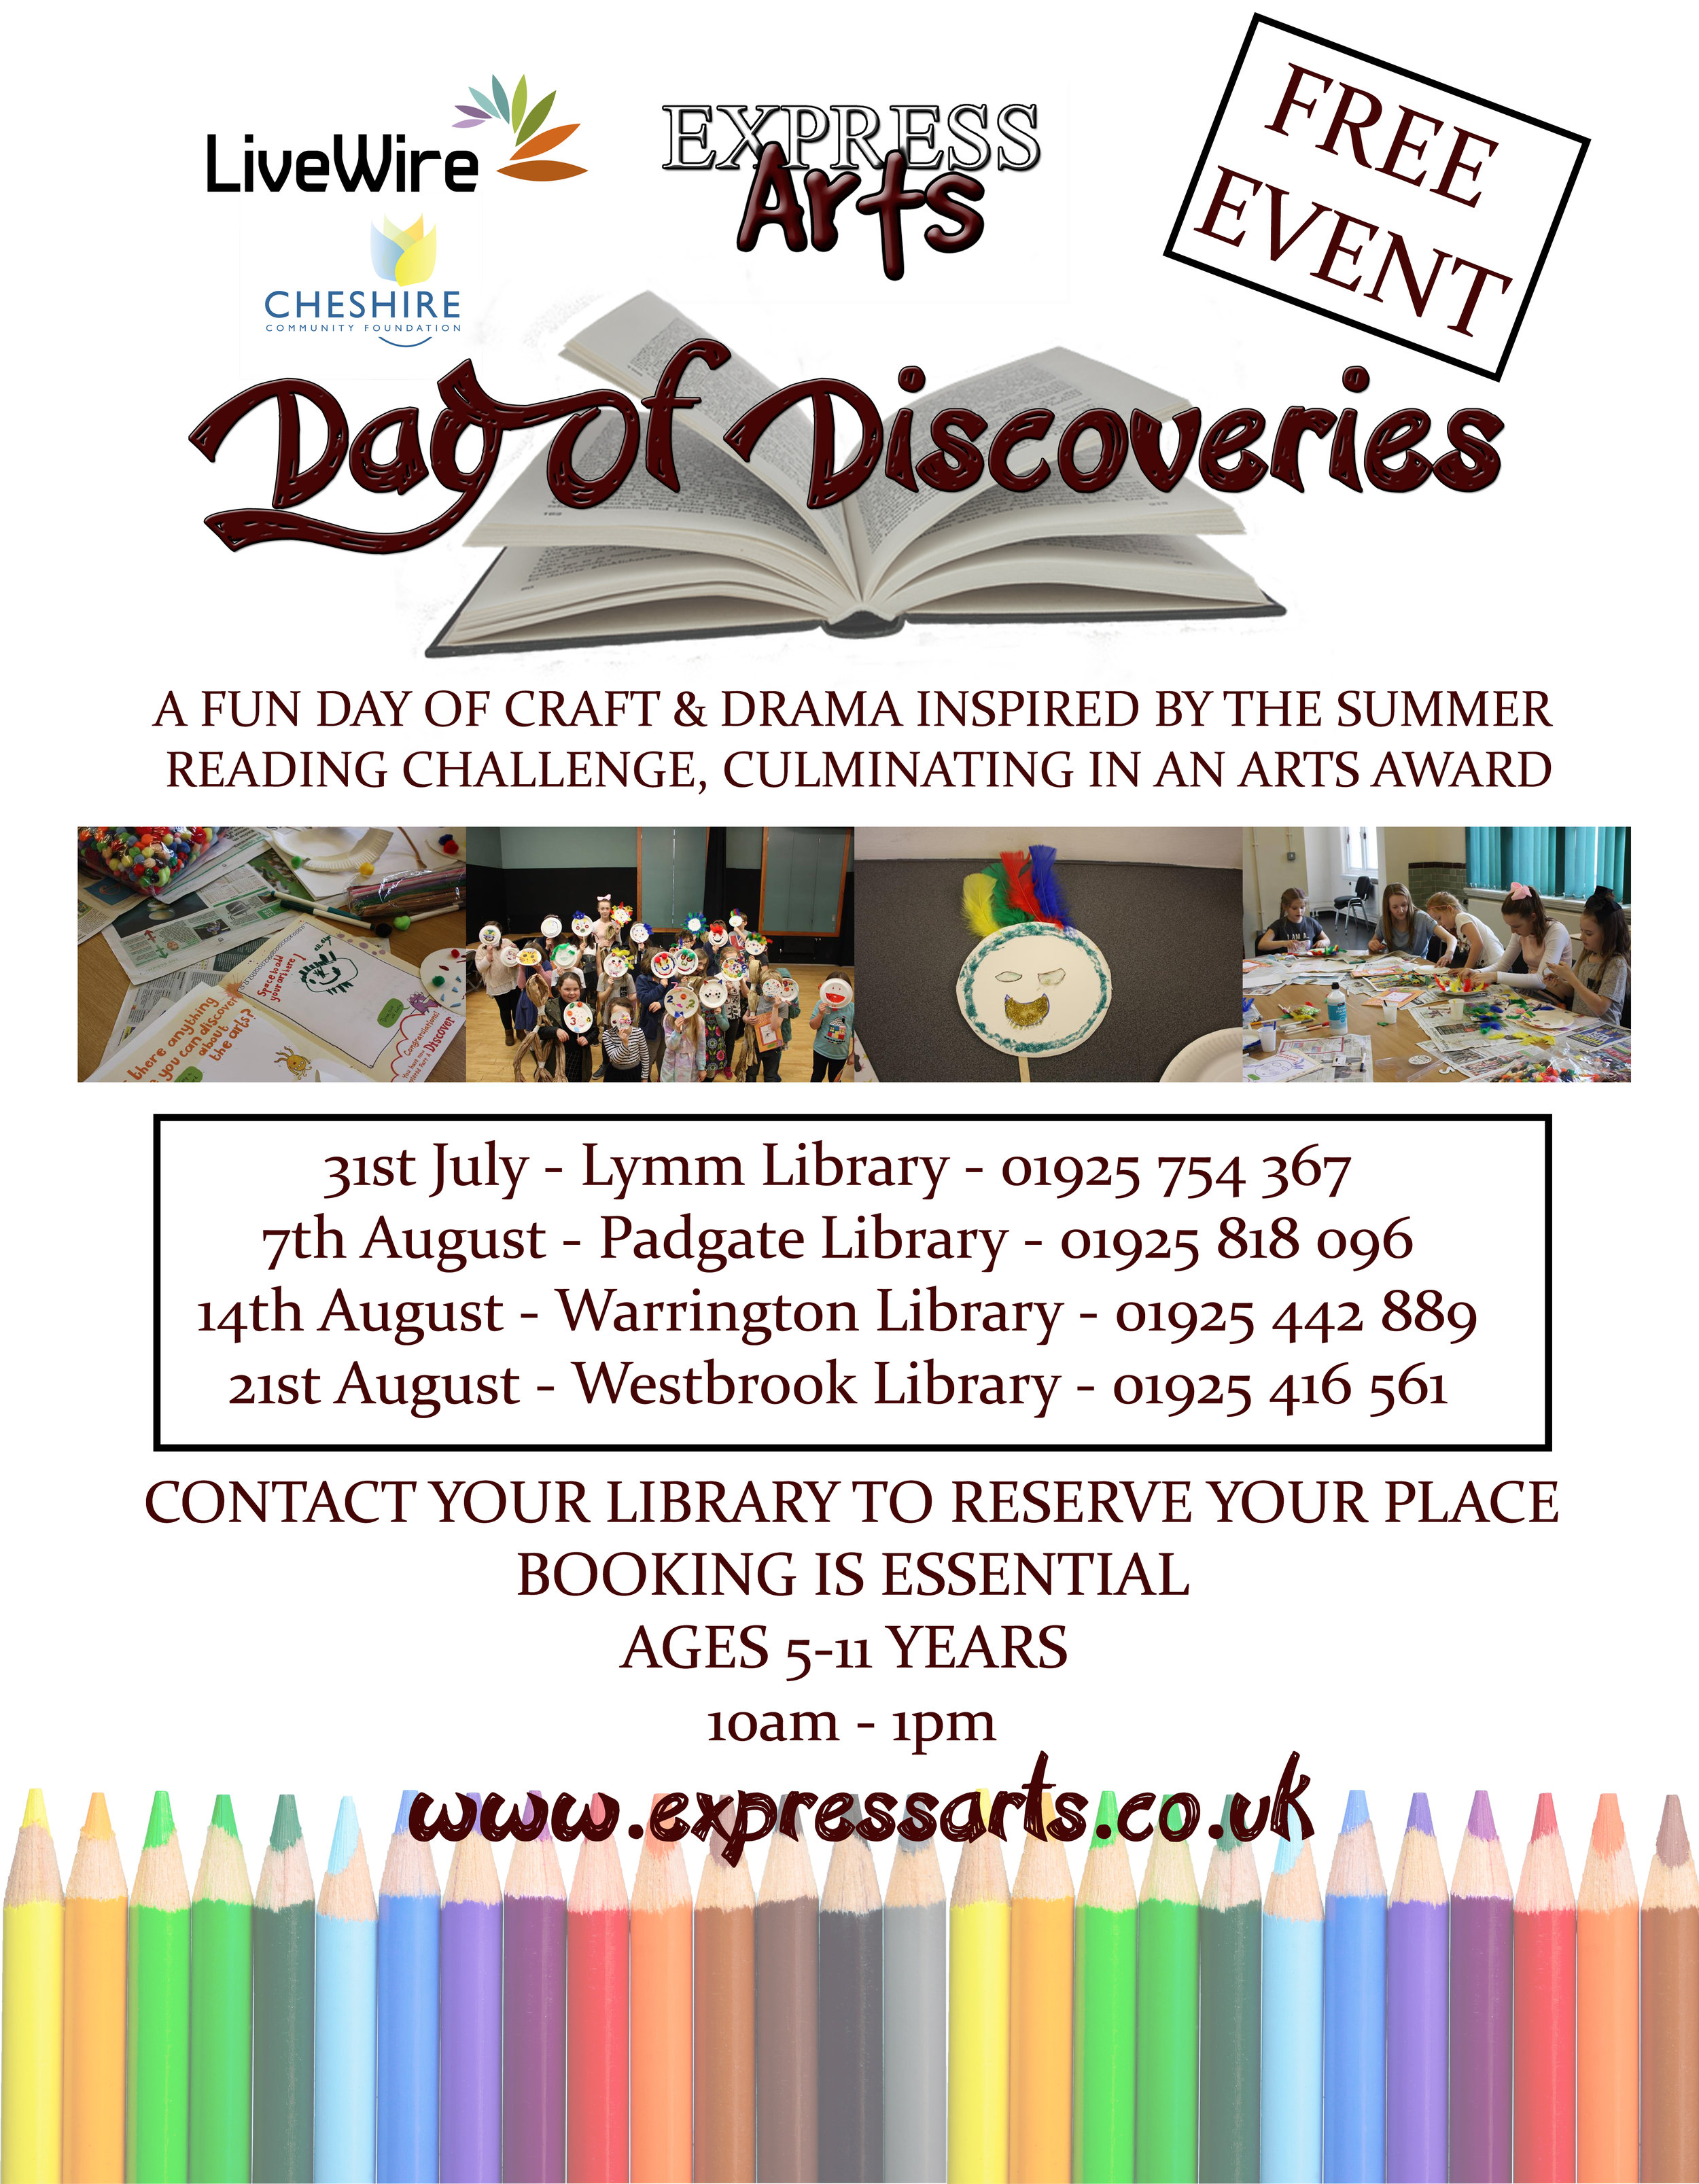 Day Of discoveries library leaflets.jpg